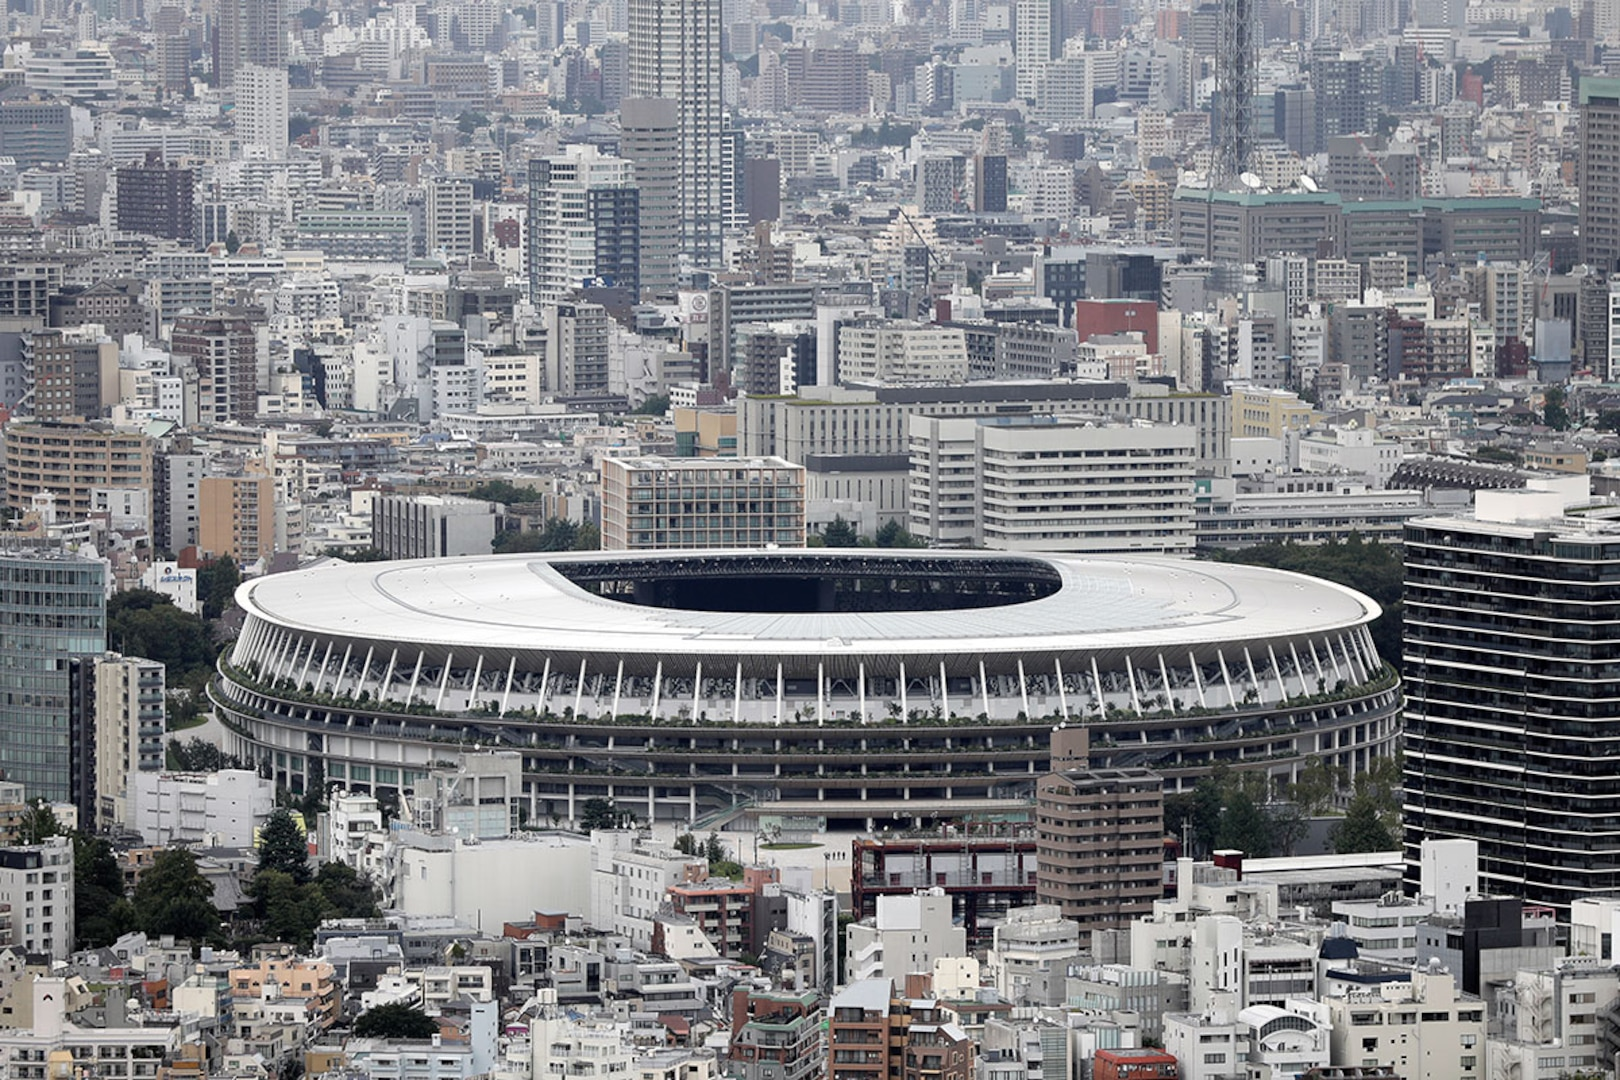 Exterior shot of the Olympic Stadium in Tokyo